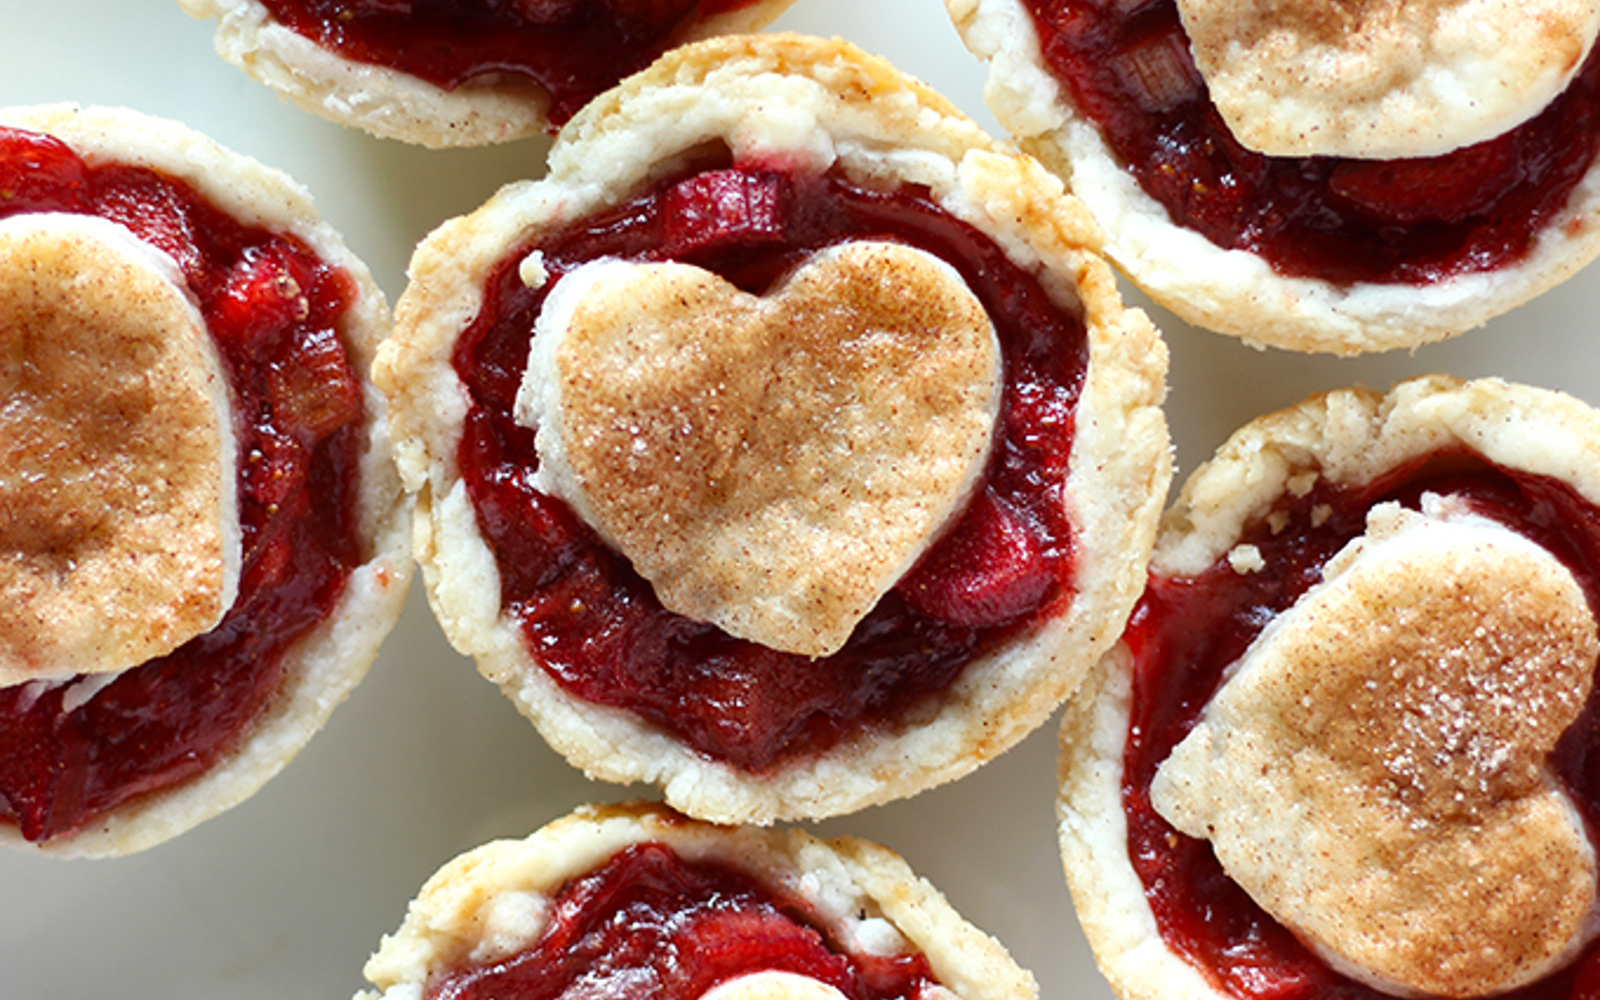 Vegan Mini Strawberry Rhubarb Pies Topped With Heart